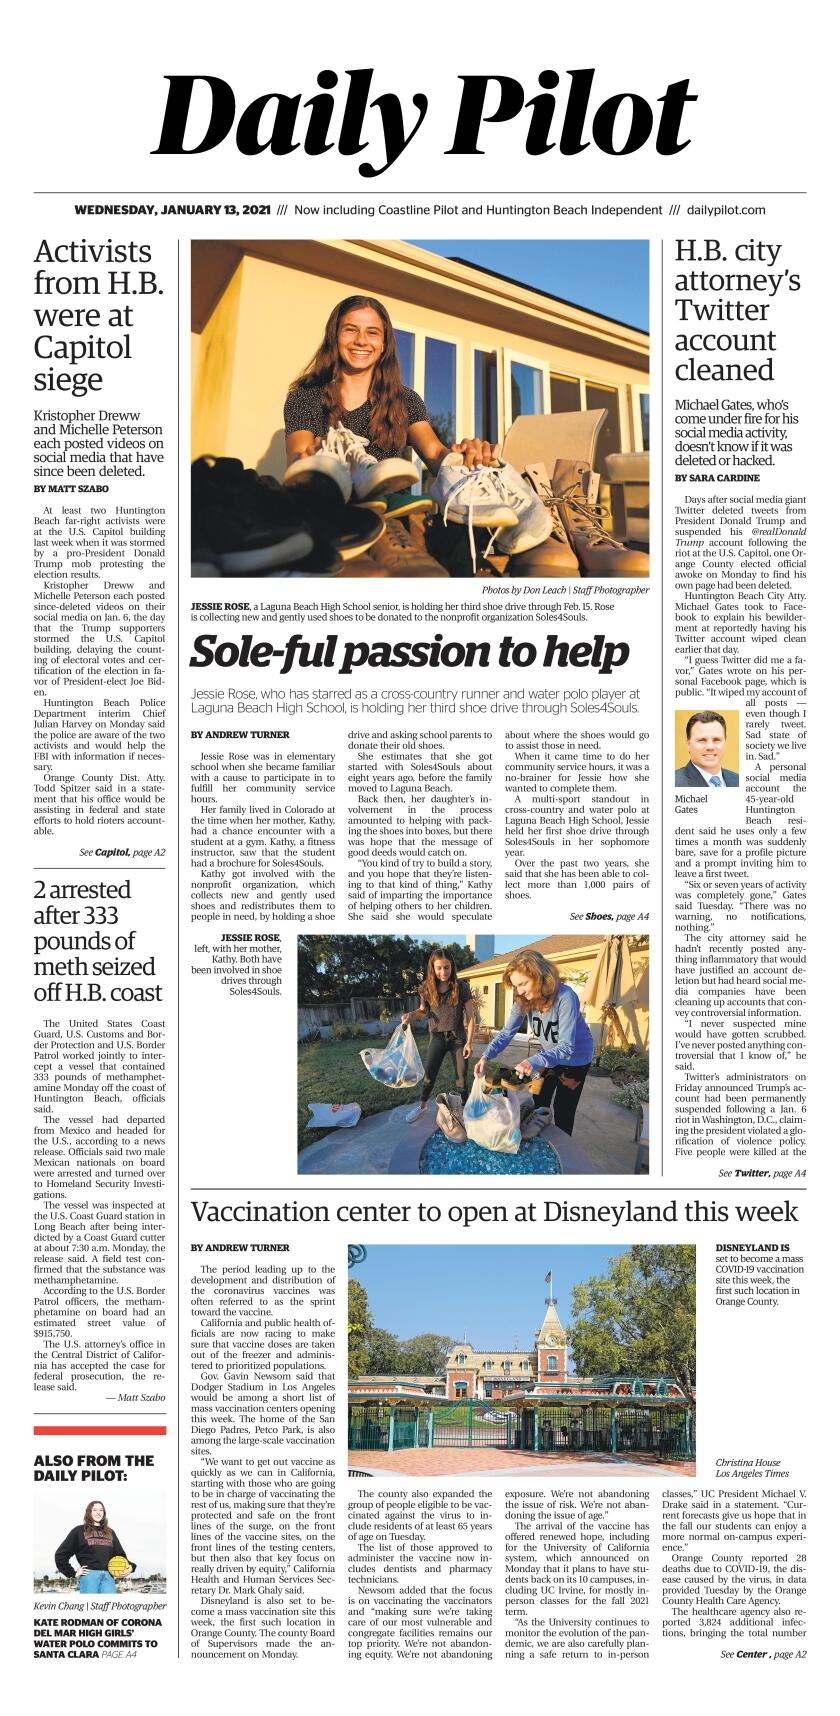 Front page of Wednesday's Daily Pilot.